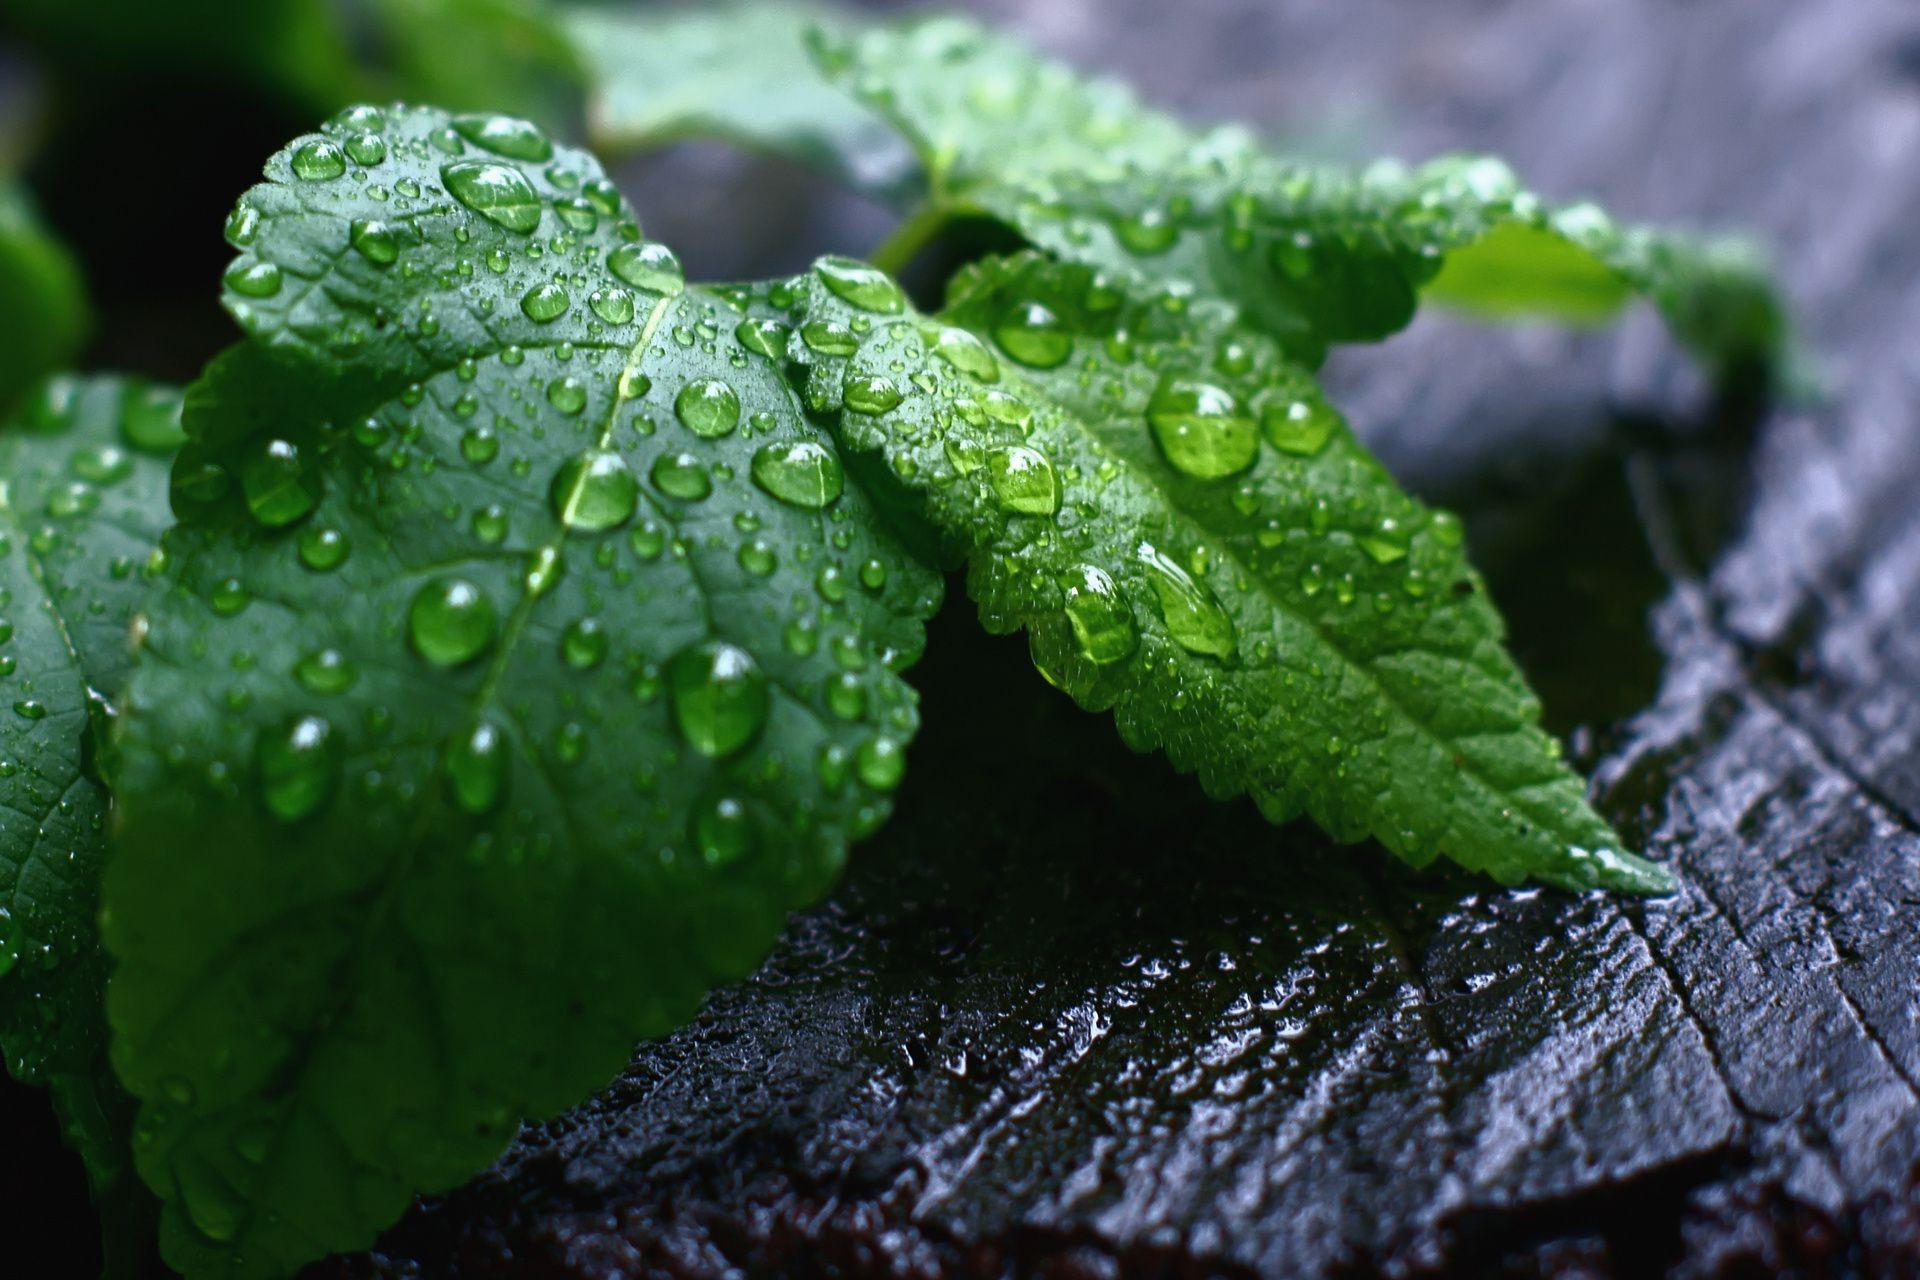 leaves leaf flora rain drop nature dew growth wet garden environment freshness water close-up droplet